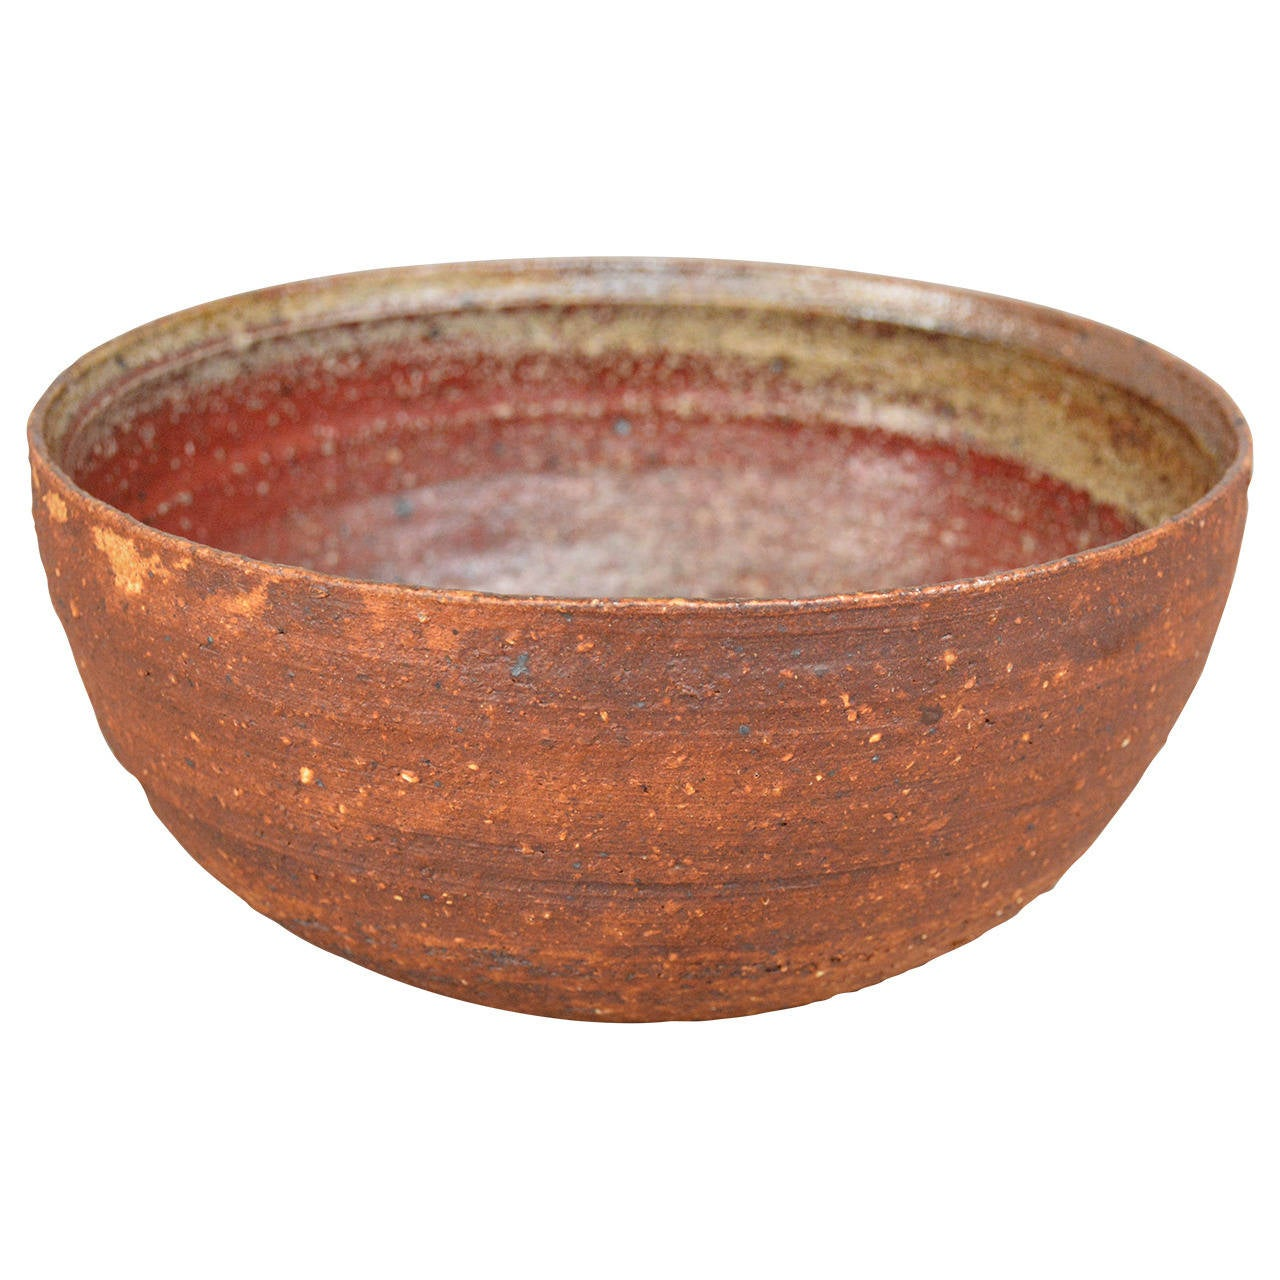 Unique Bowl by Raija Tuumi for Arabia, Finland